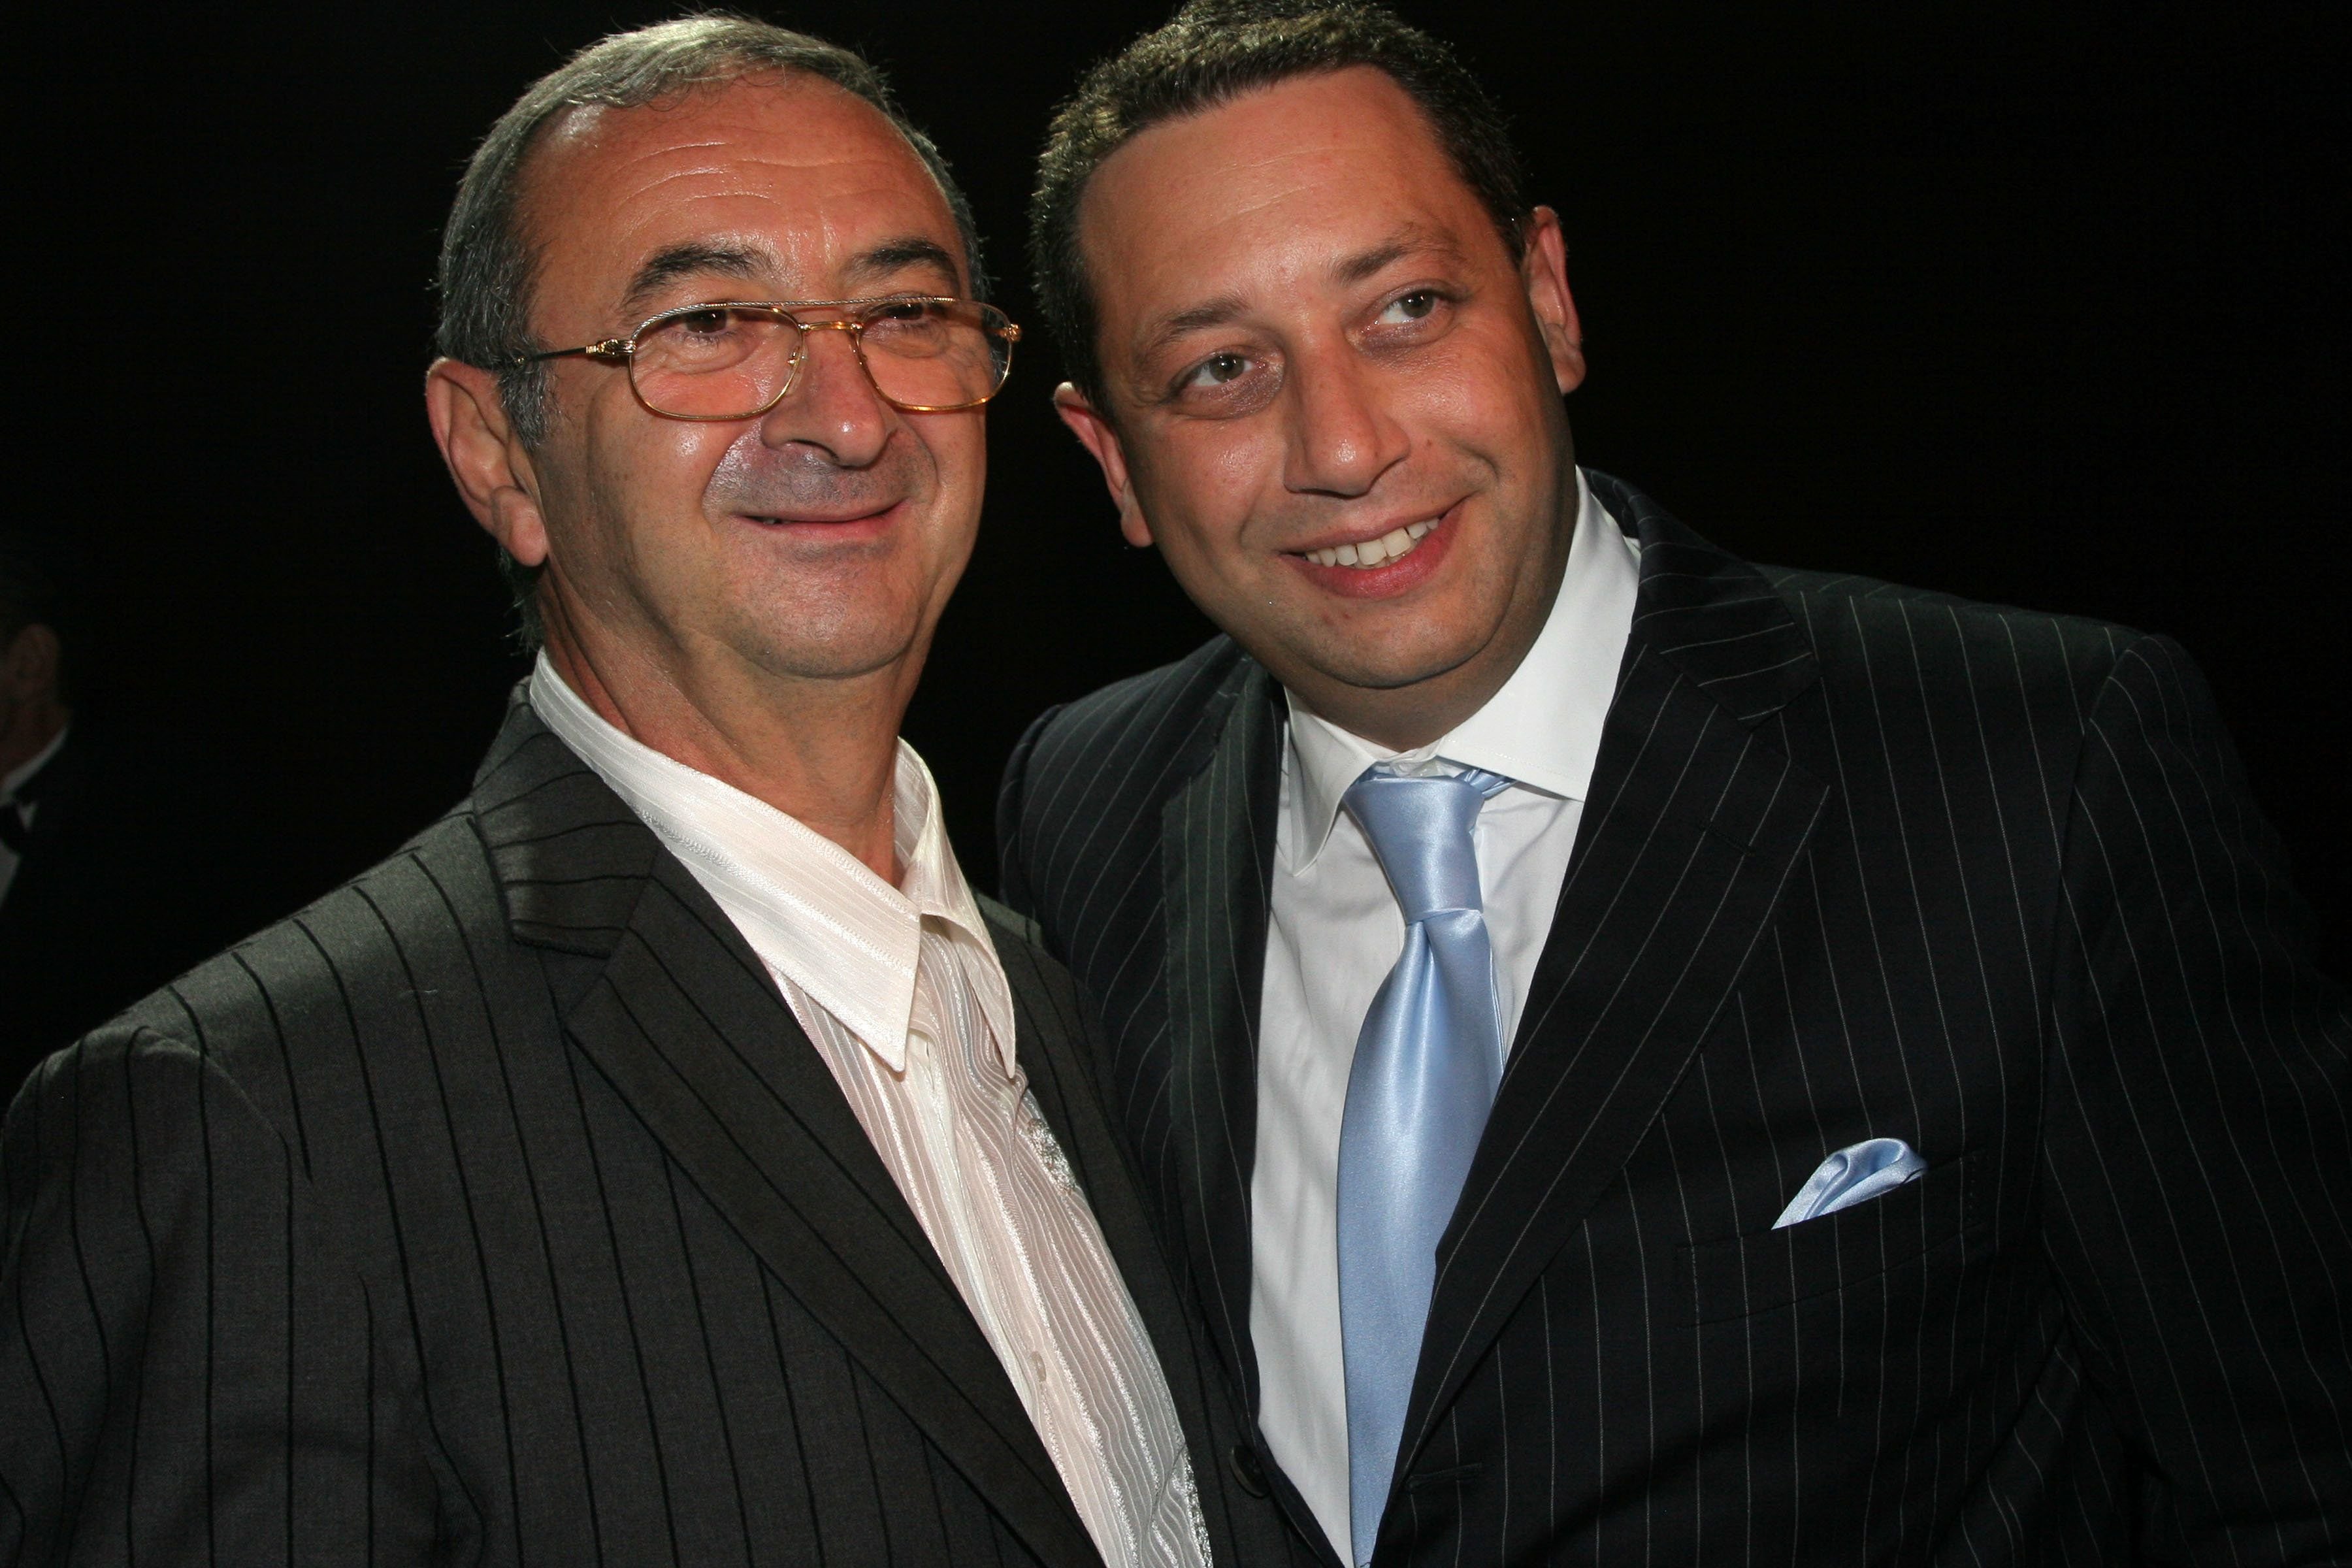 NEW YORK, NY - SEPTEMBER 19: Tamir Sapir and Felix Sater attend Trump Soho Hotel Condominium Launch Party at Tribeca Rooftop on September 19, 2007 in New York City. (Photo by WILL RAGOZZINO/Patrick McMullan via Getty Images)